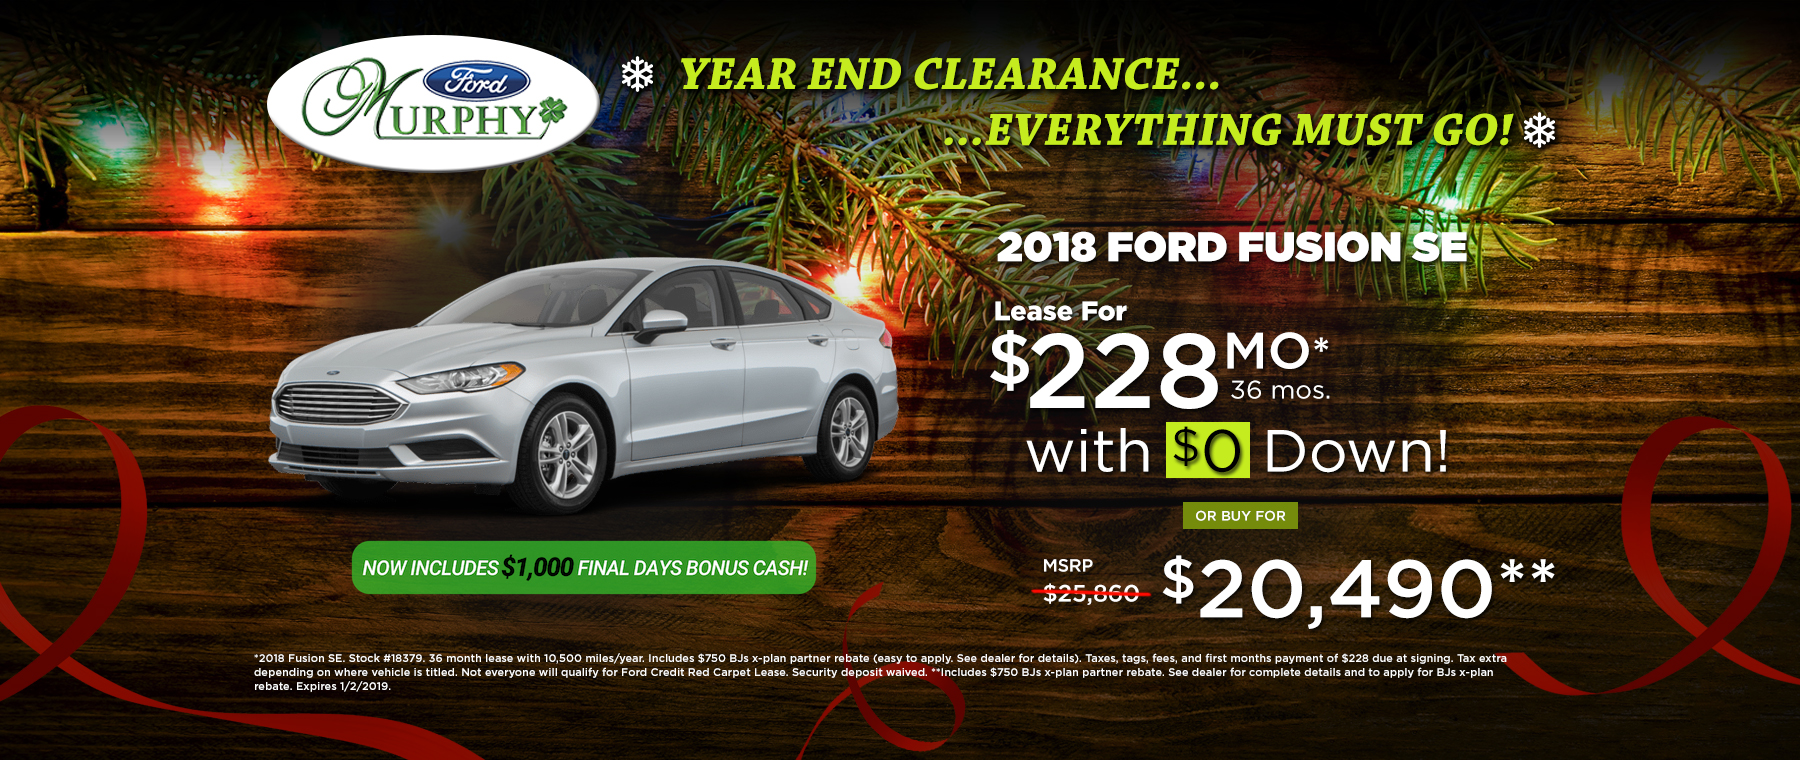 2018 Ford Fusion SE December Lease Offer